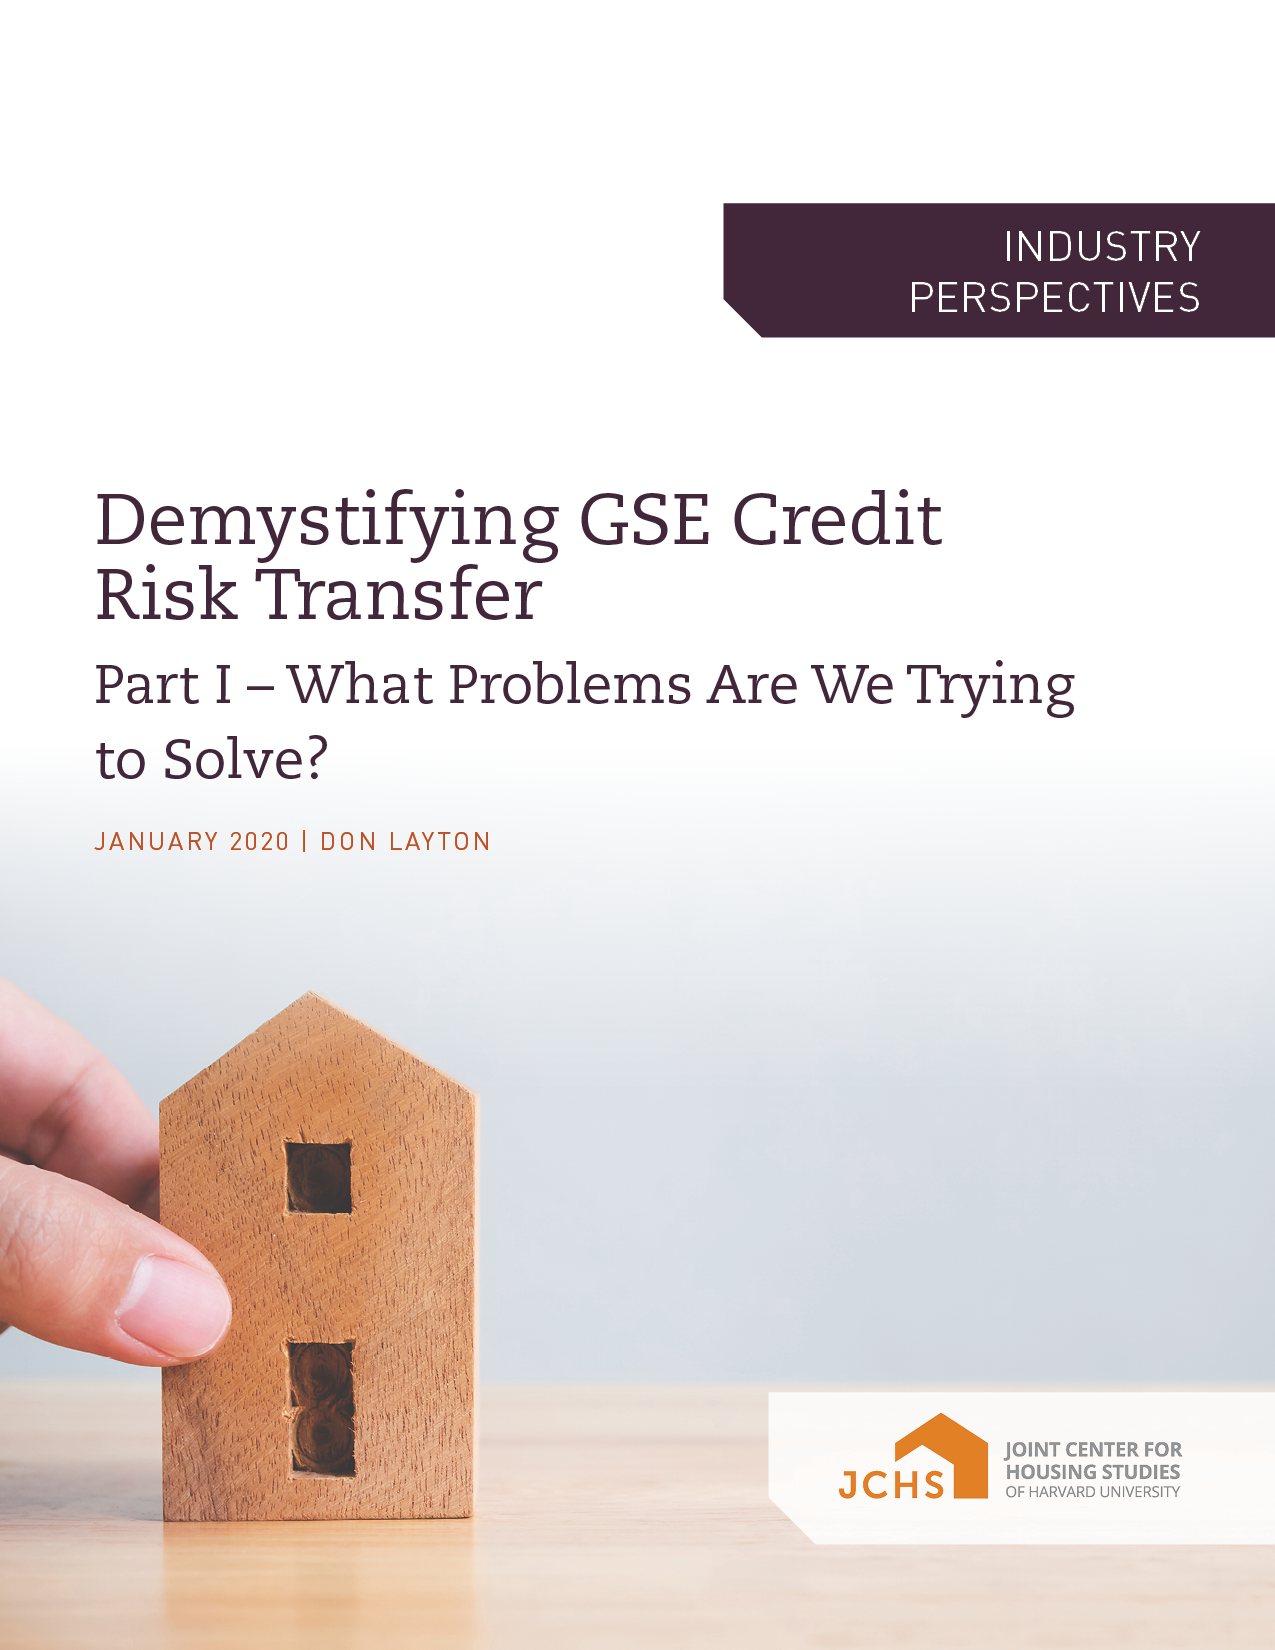 Demystifying GSE Credit Risk Transfer: Part I – What Problems Are We Trying to Solve?